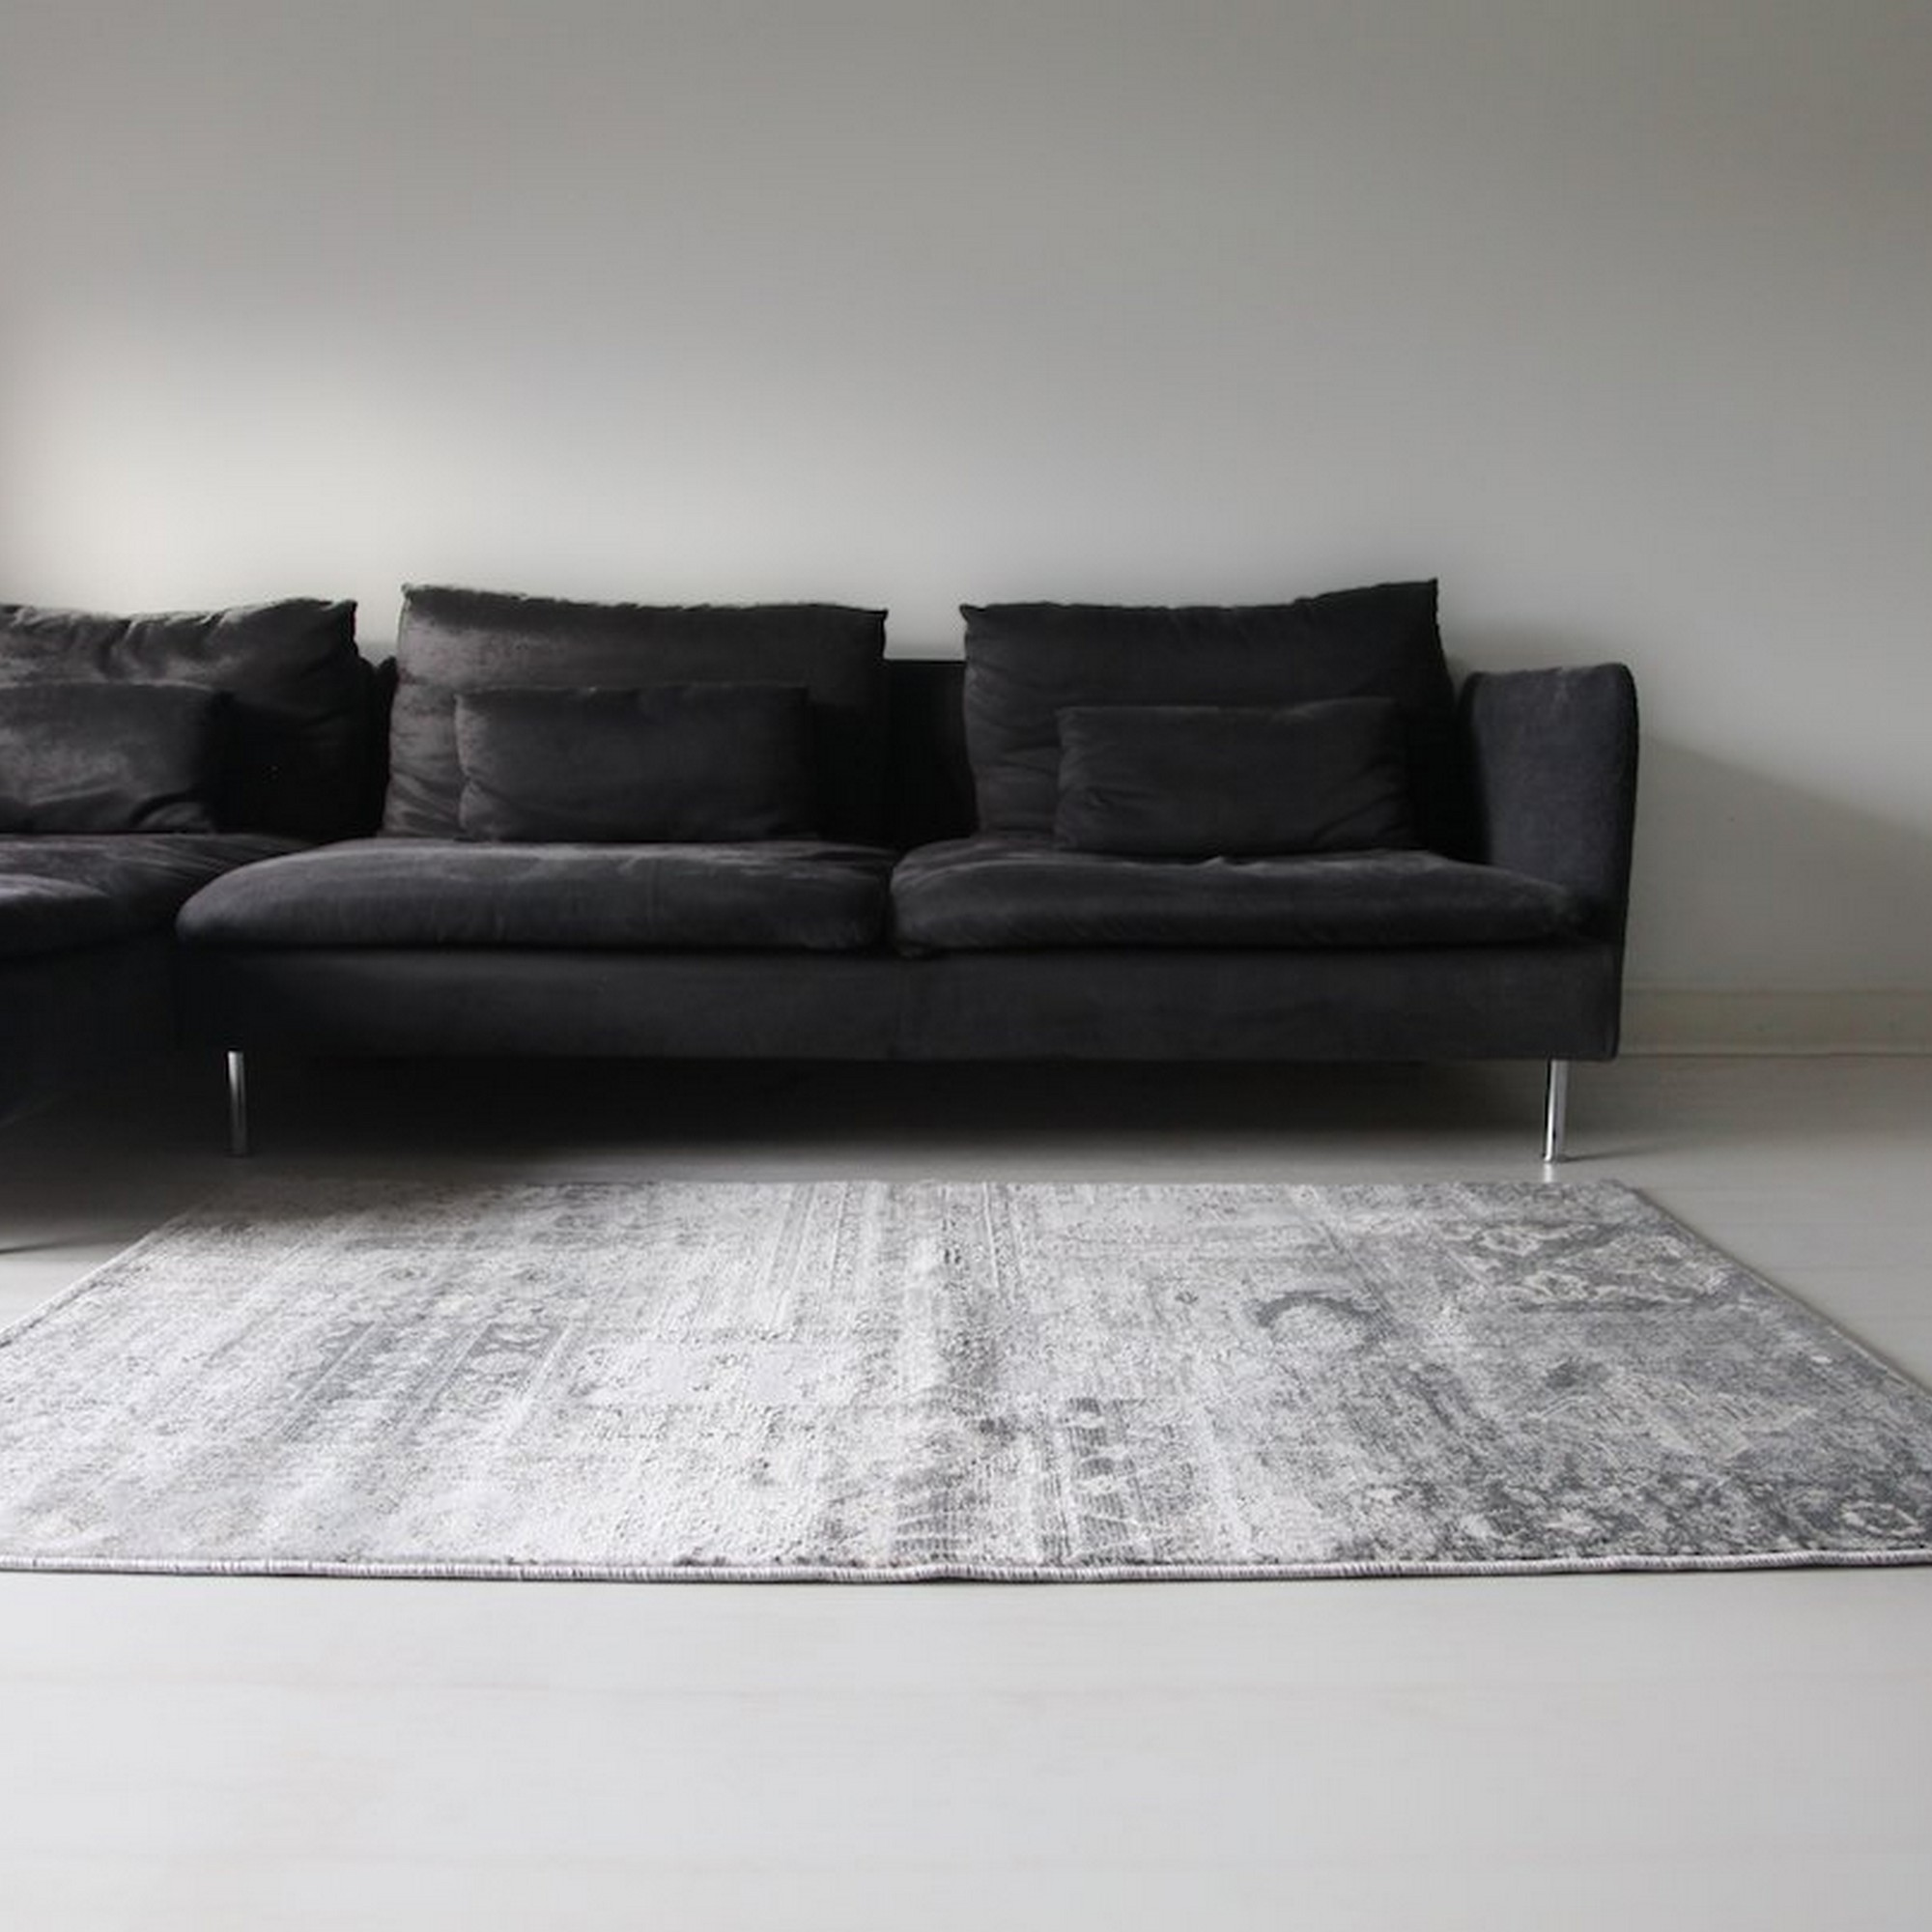 Aquarelle Panel Rugs in Silver